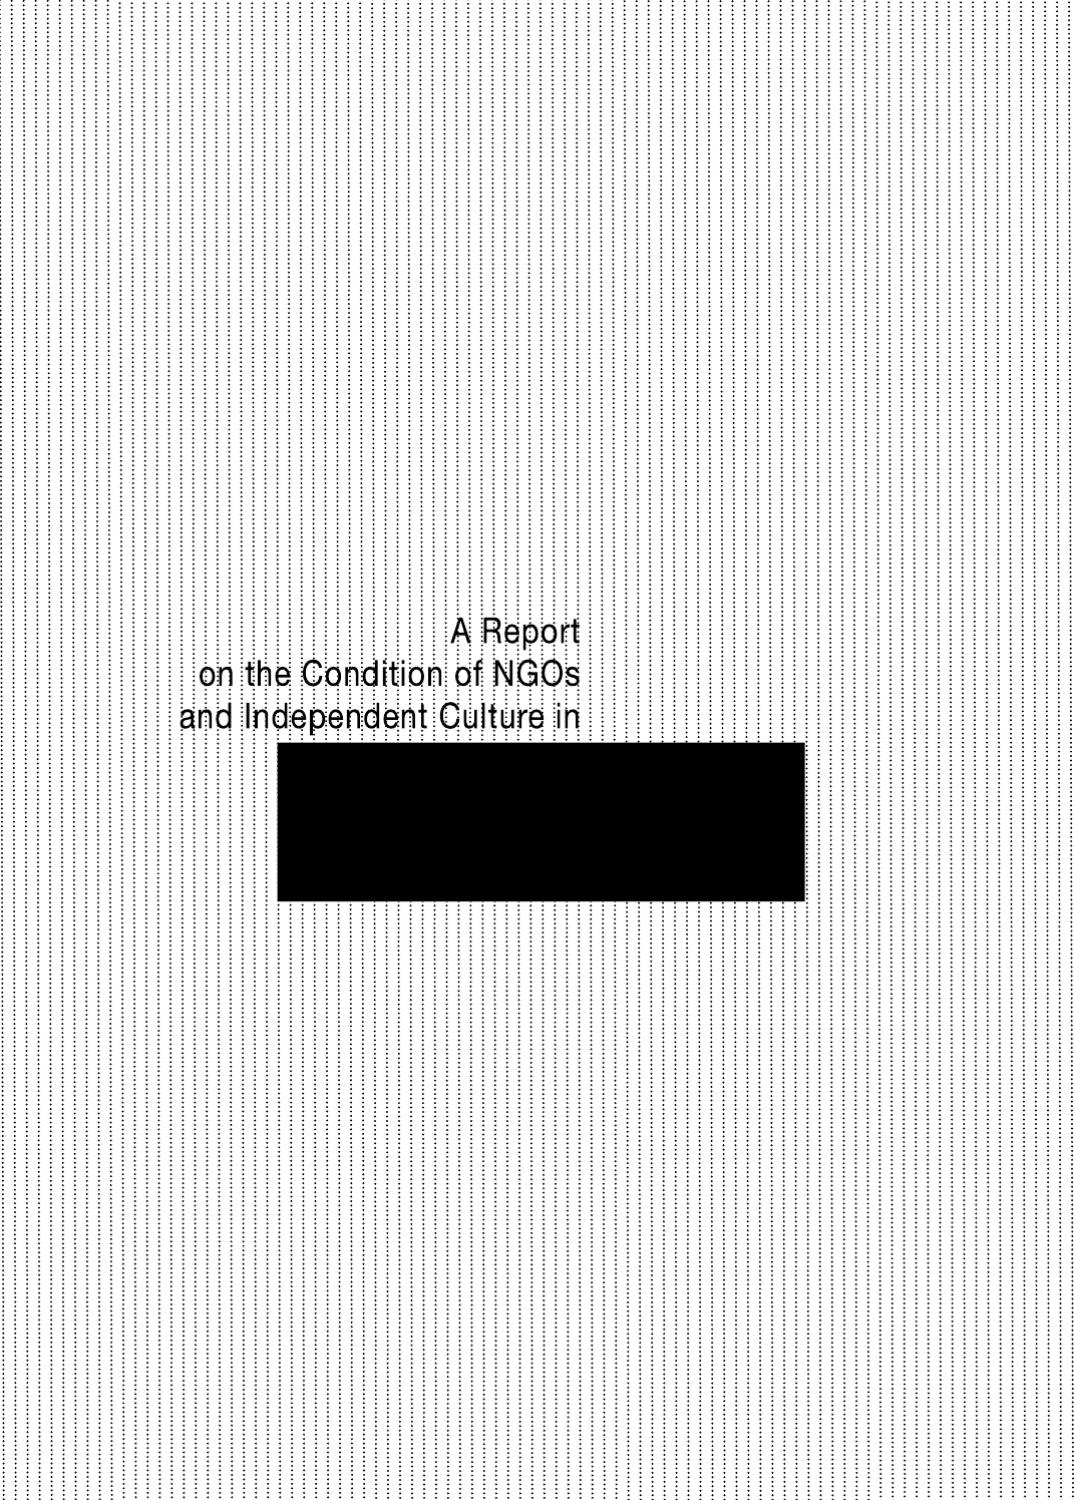 A Report on the Condition of Independent Culture and NGOs in